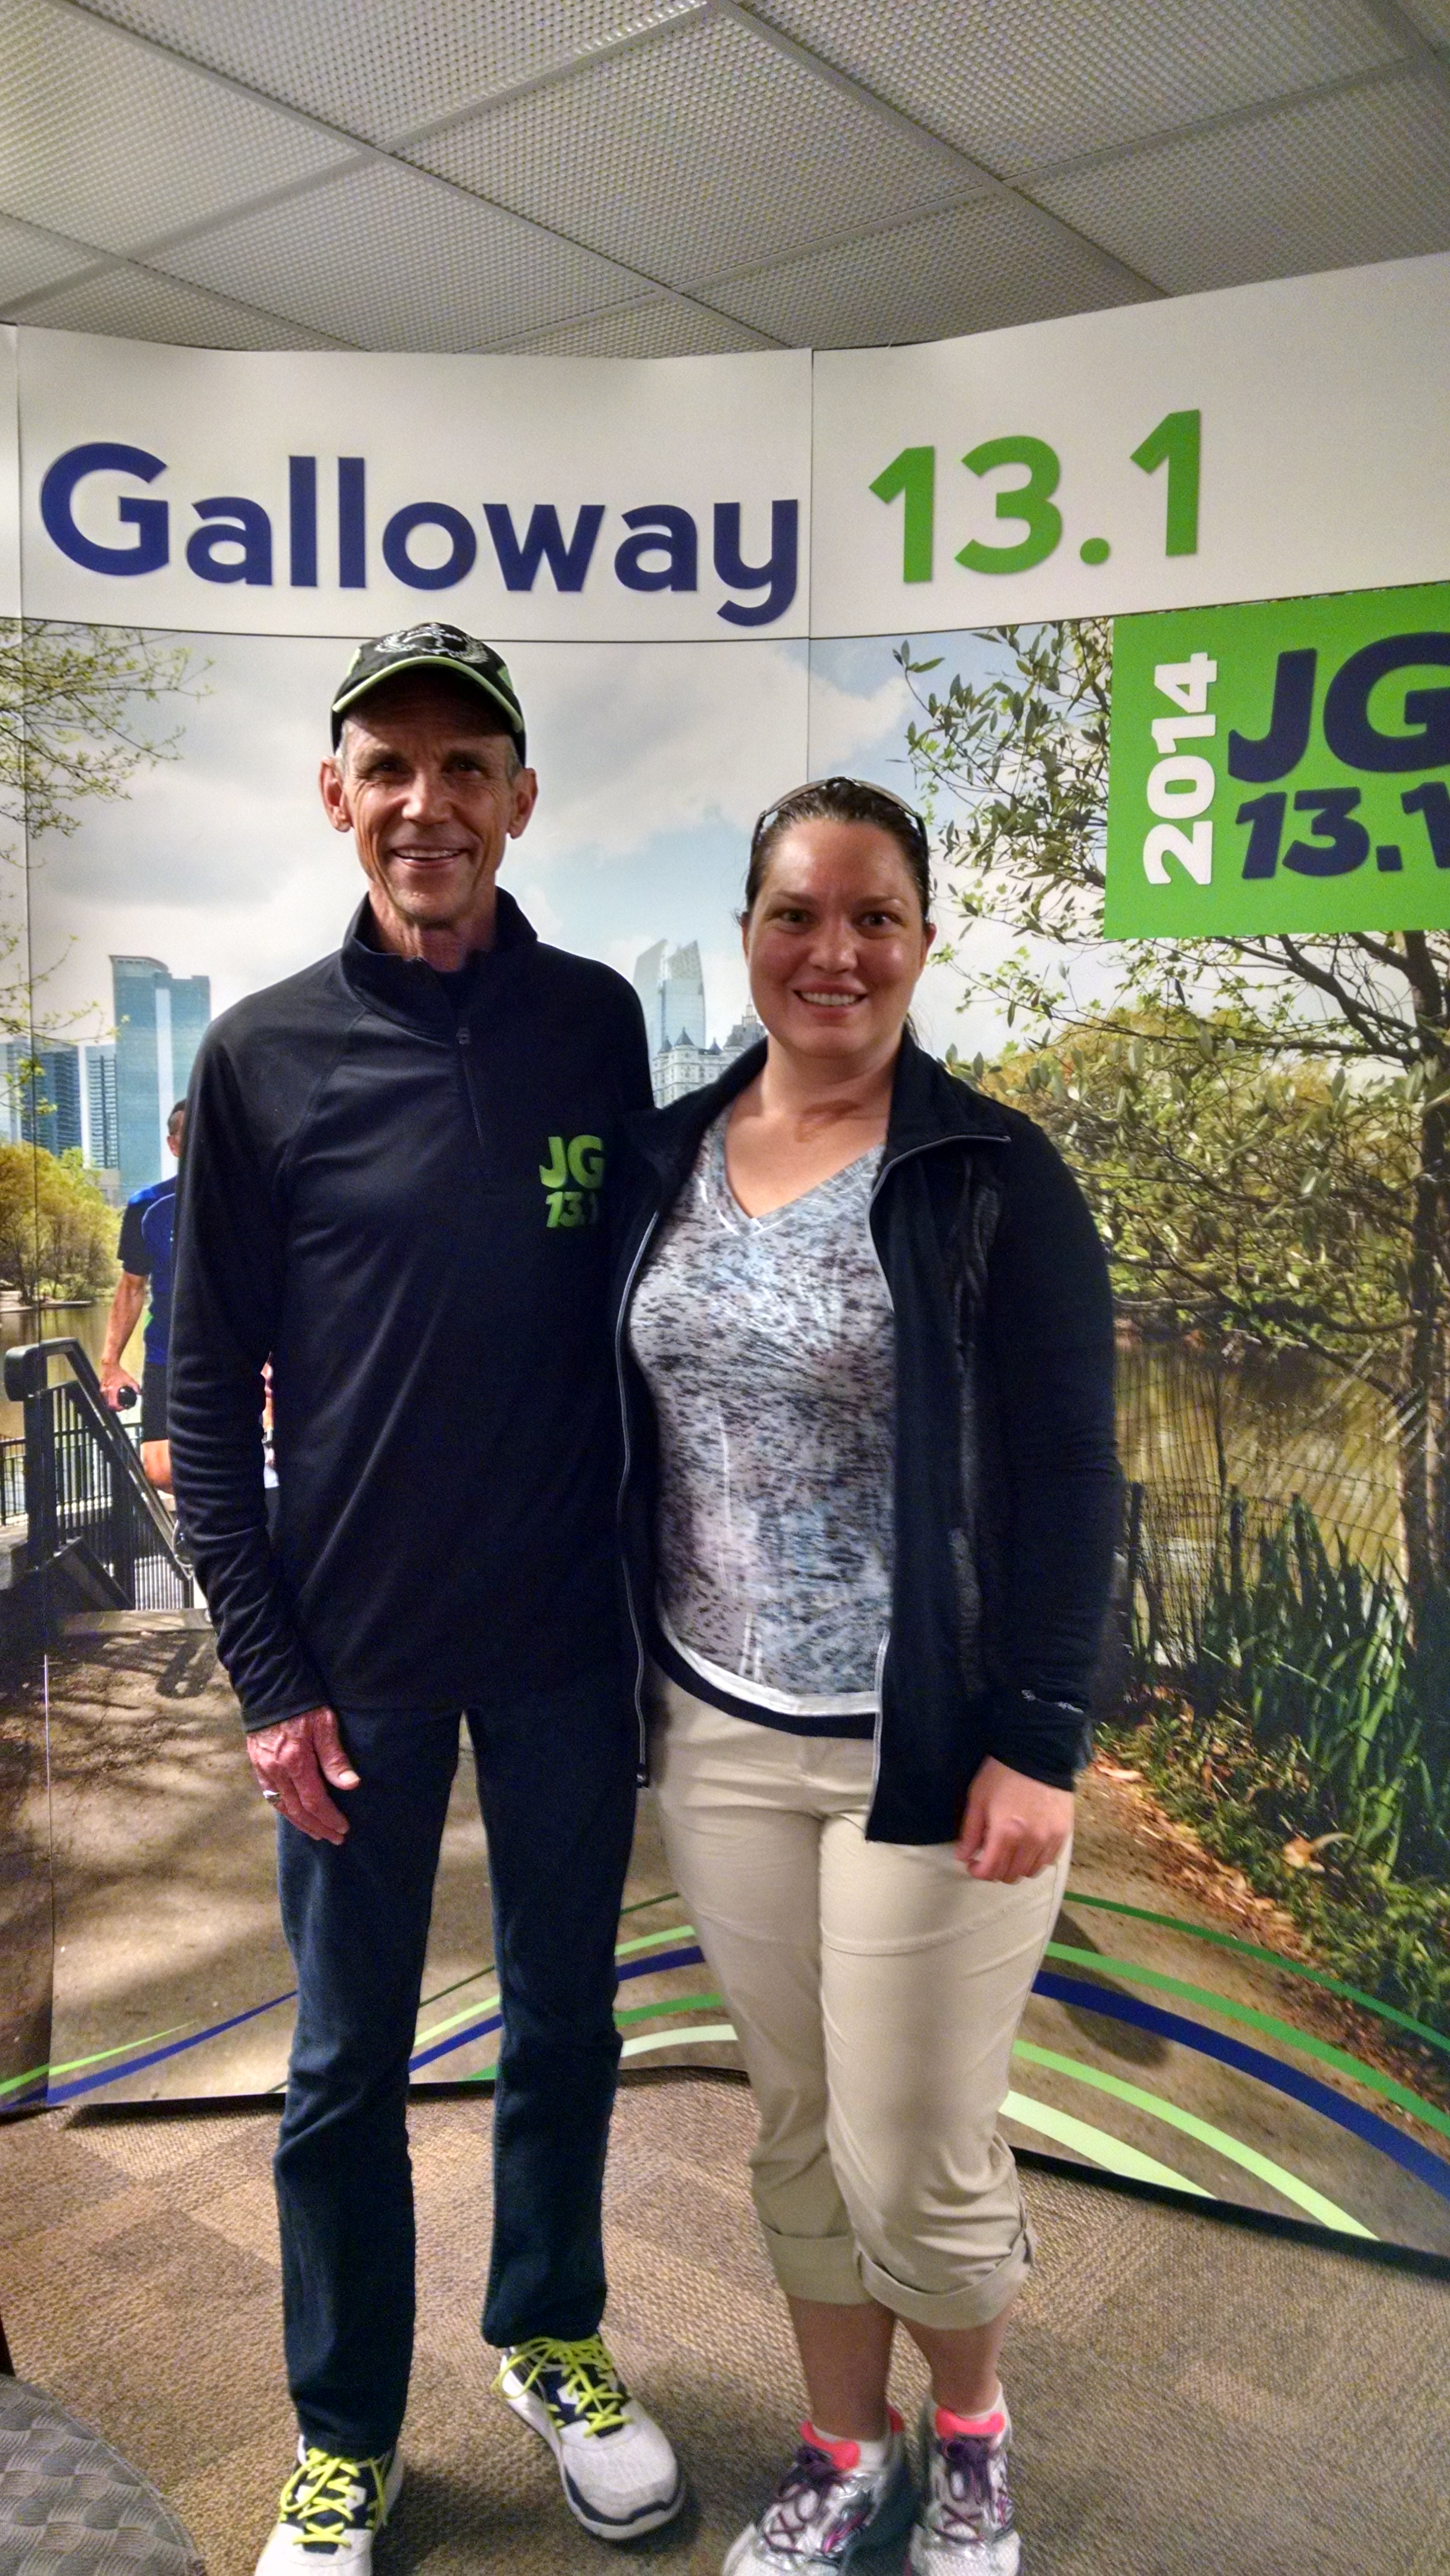 Jeff Galloway Weekend: Barb's 5k